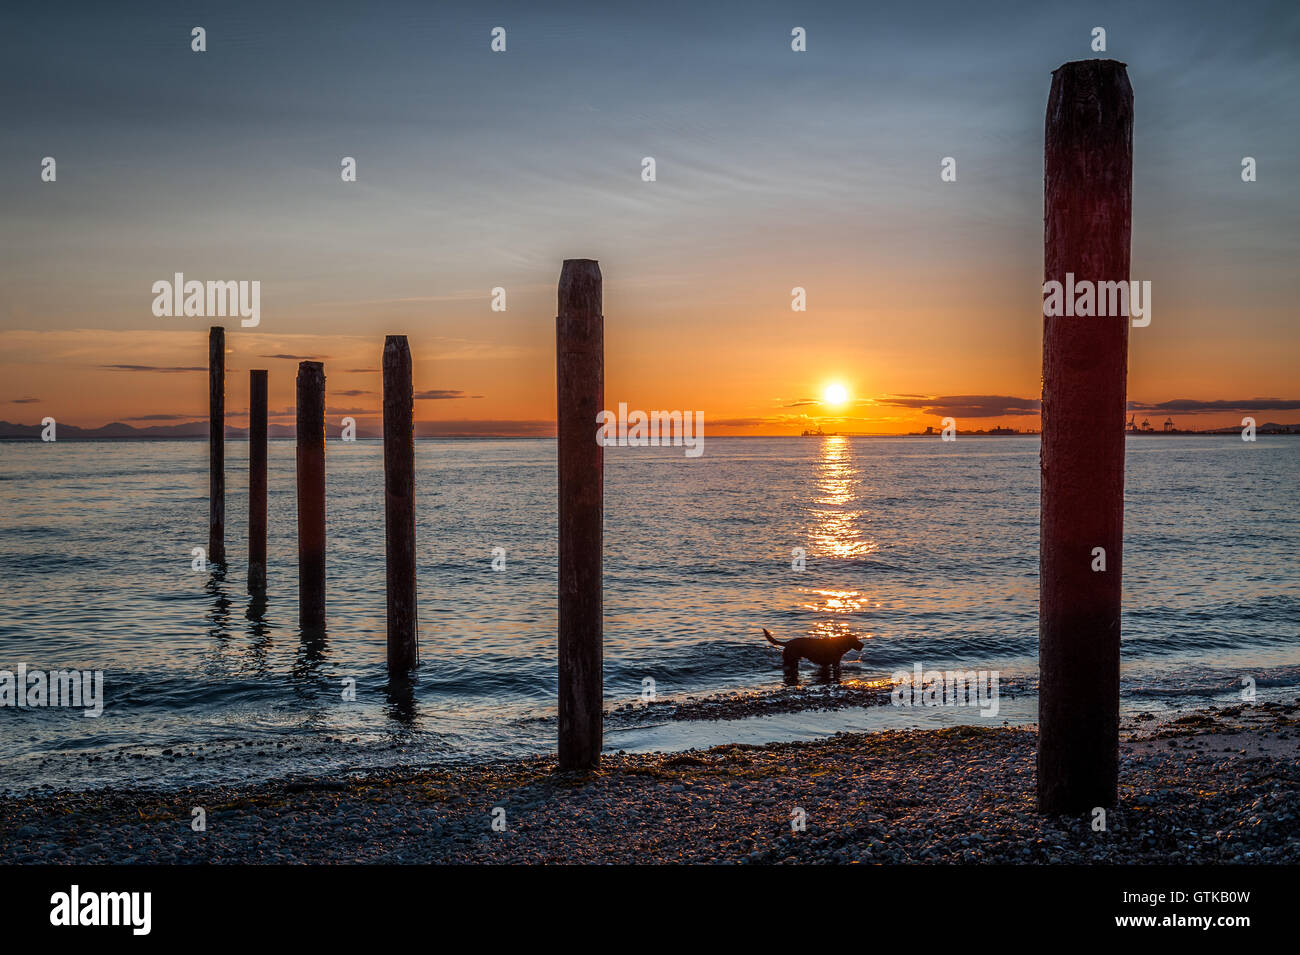 dog silhouette at sunset near the old pier of Point Roberts, Washington State, USA - Stock Image